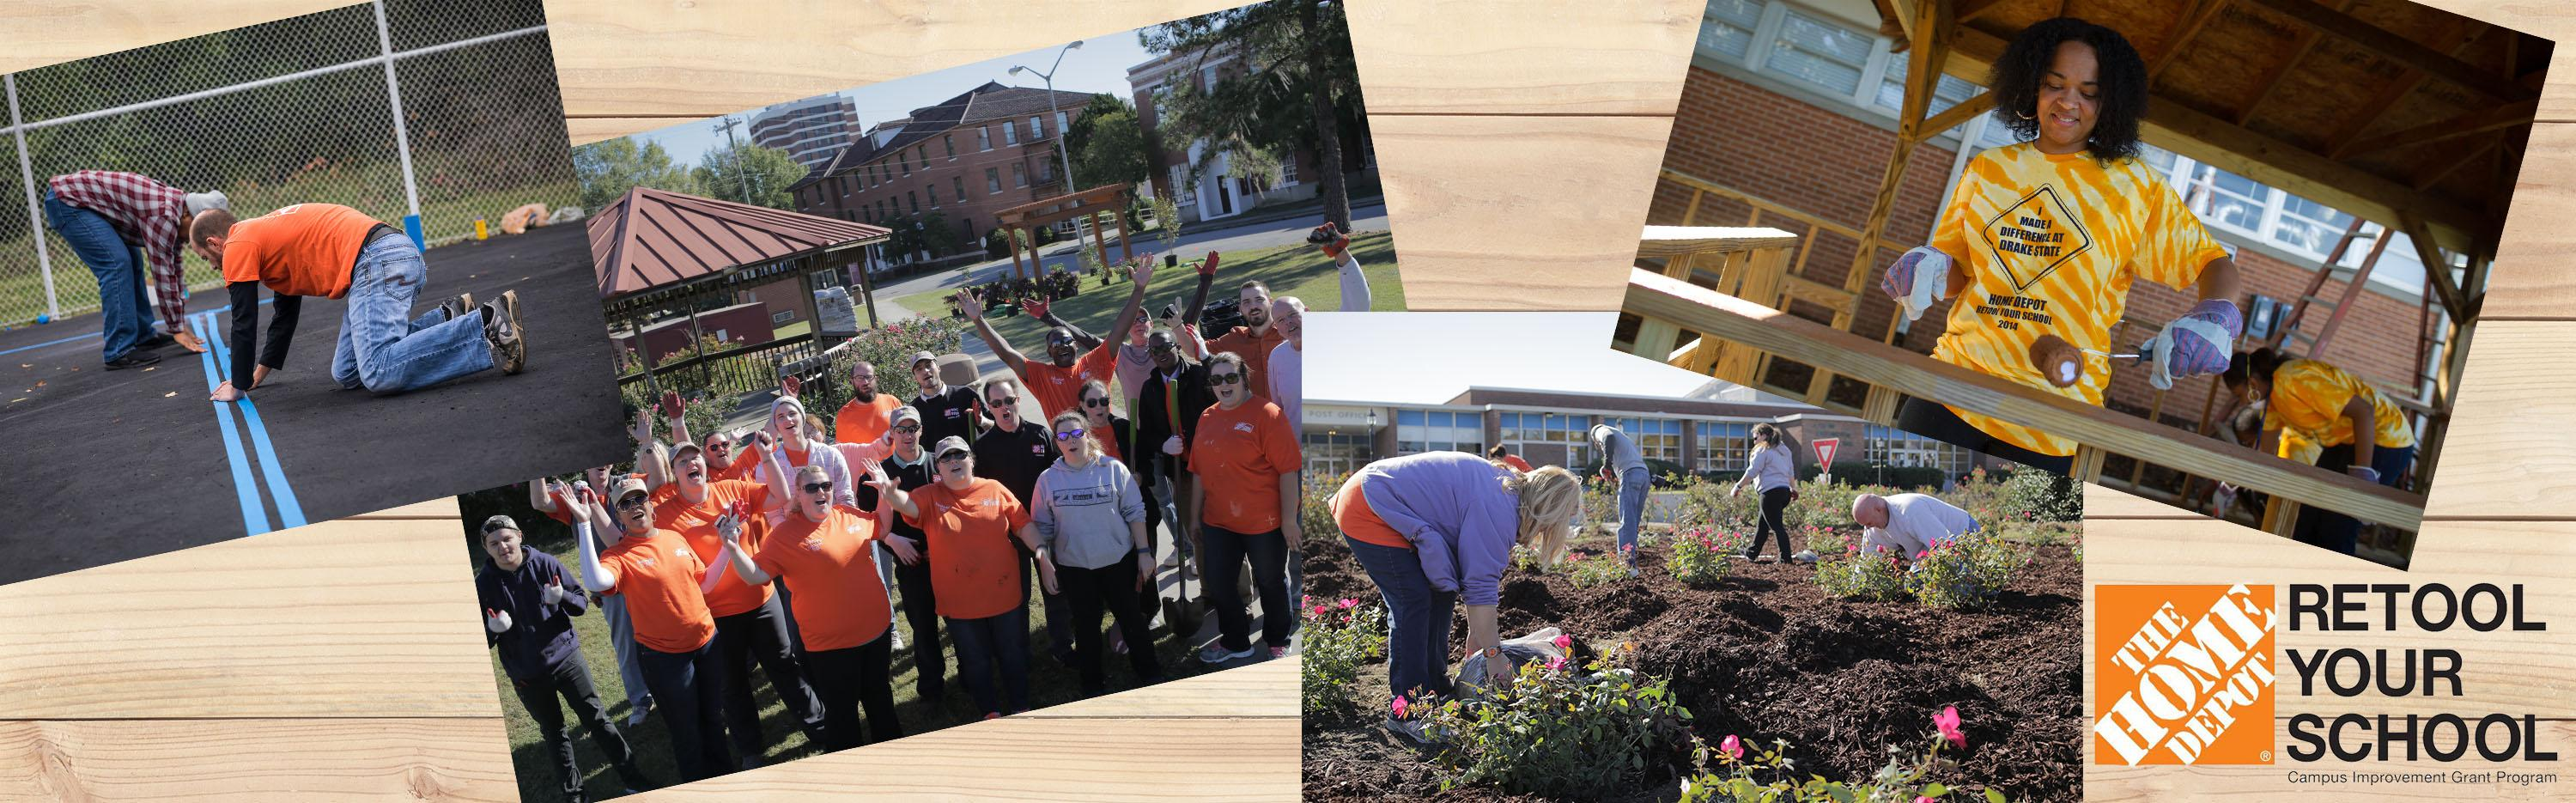 Home Depot supports HBCUs with grant program.